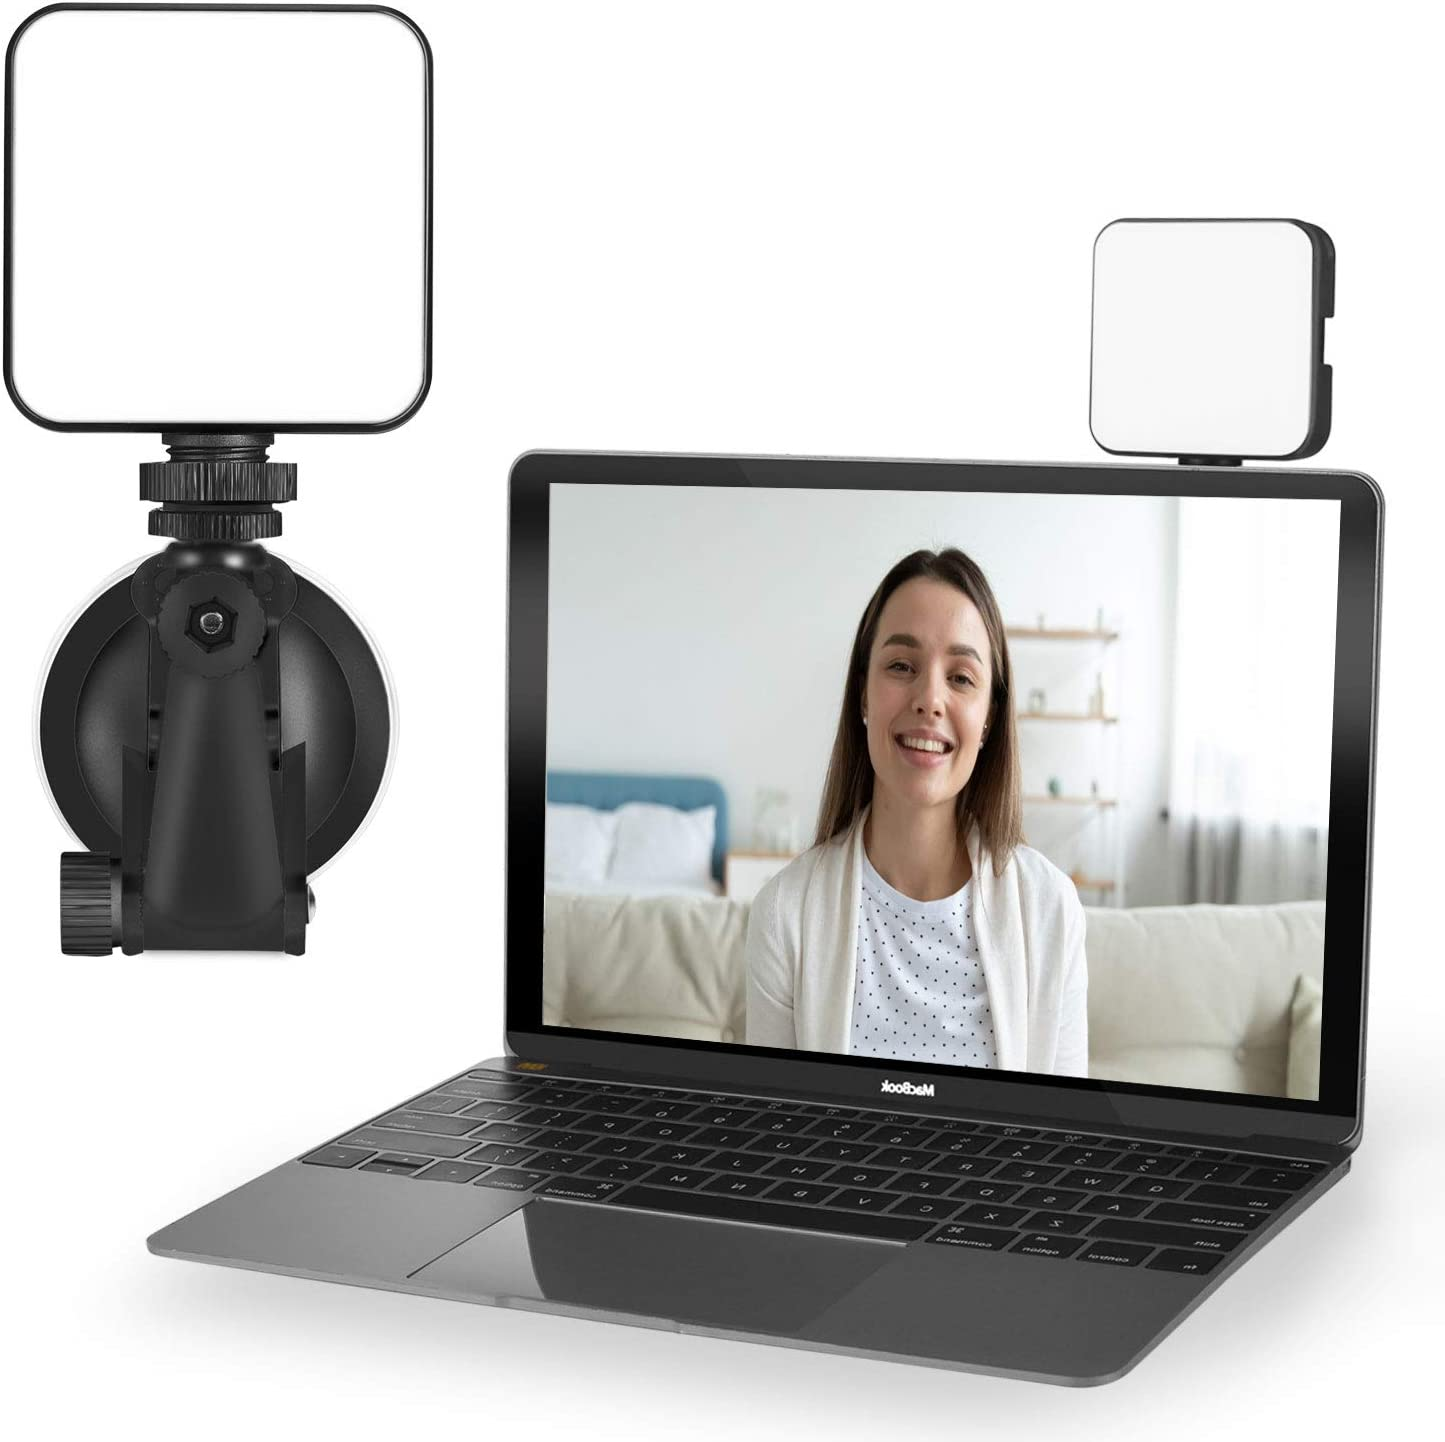 Light for Video Conferencing   Video Conference Lighting Kit   Cube Laptop Computer Webcam Light for Video Conferencing - Self Broadcast - Zoom Call Meeting - Microsoft Teams - Live Streaming